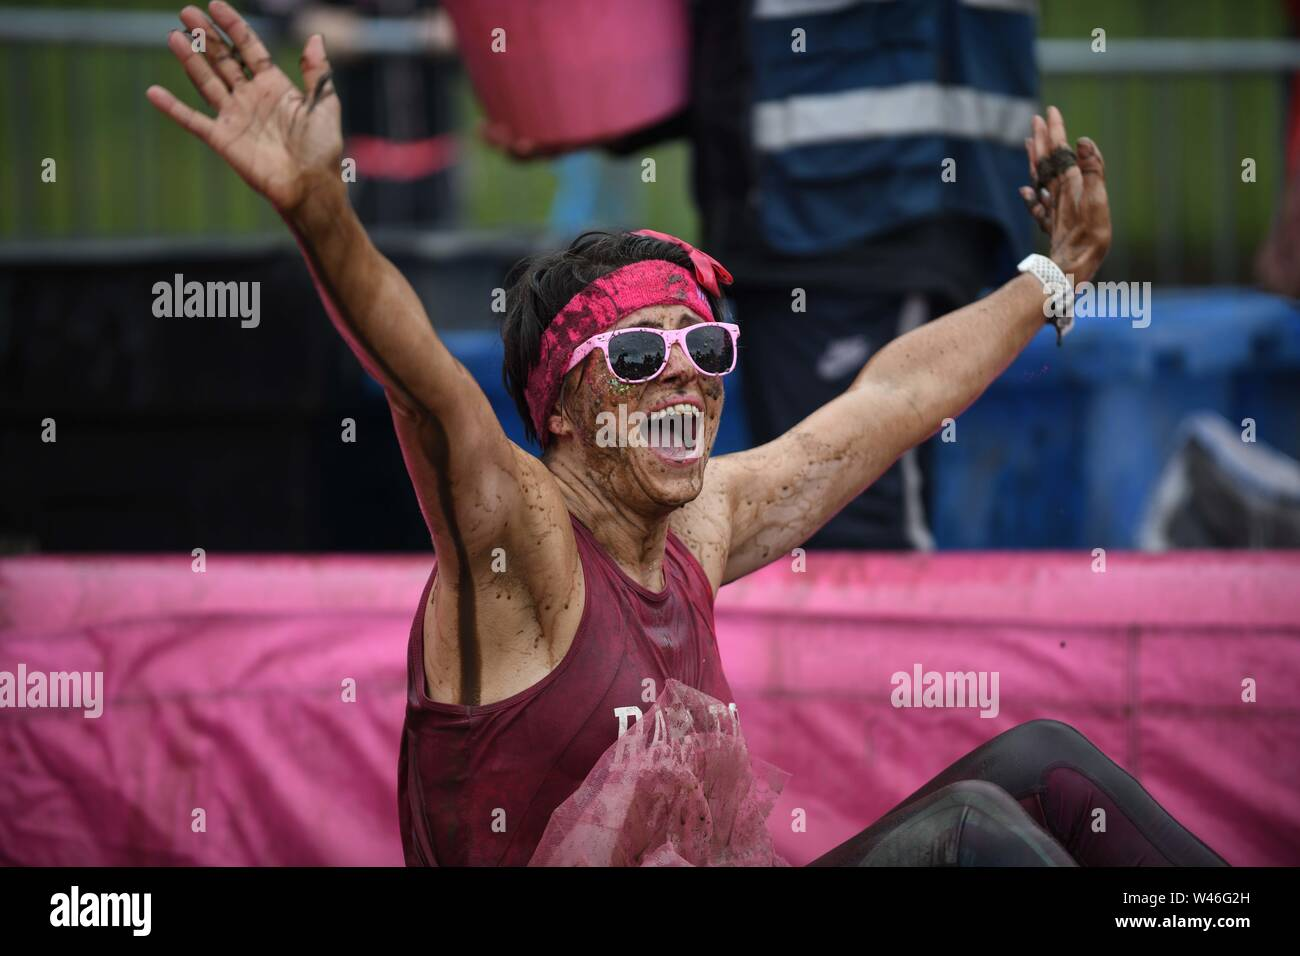 Swansea, Wales, UK. 20th July 2019 Pictured are fundraisers during the Cancer Research UK's Pretty Muddy event in Swansea, South Wales on Saturday. The participants, mainly women, scrambled over a number of muddy challenges on the 5k course in the cities Singleton Park, raising thousands of pounds for the charity. Credit : Robert Melen/Alamy Live News. Stock Photo